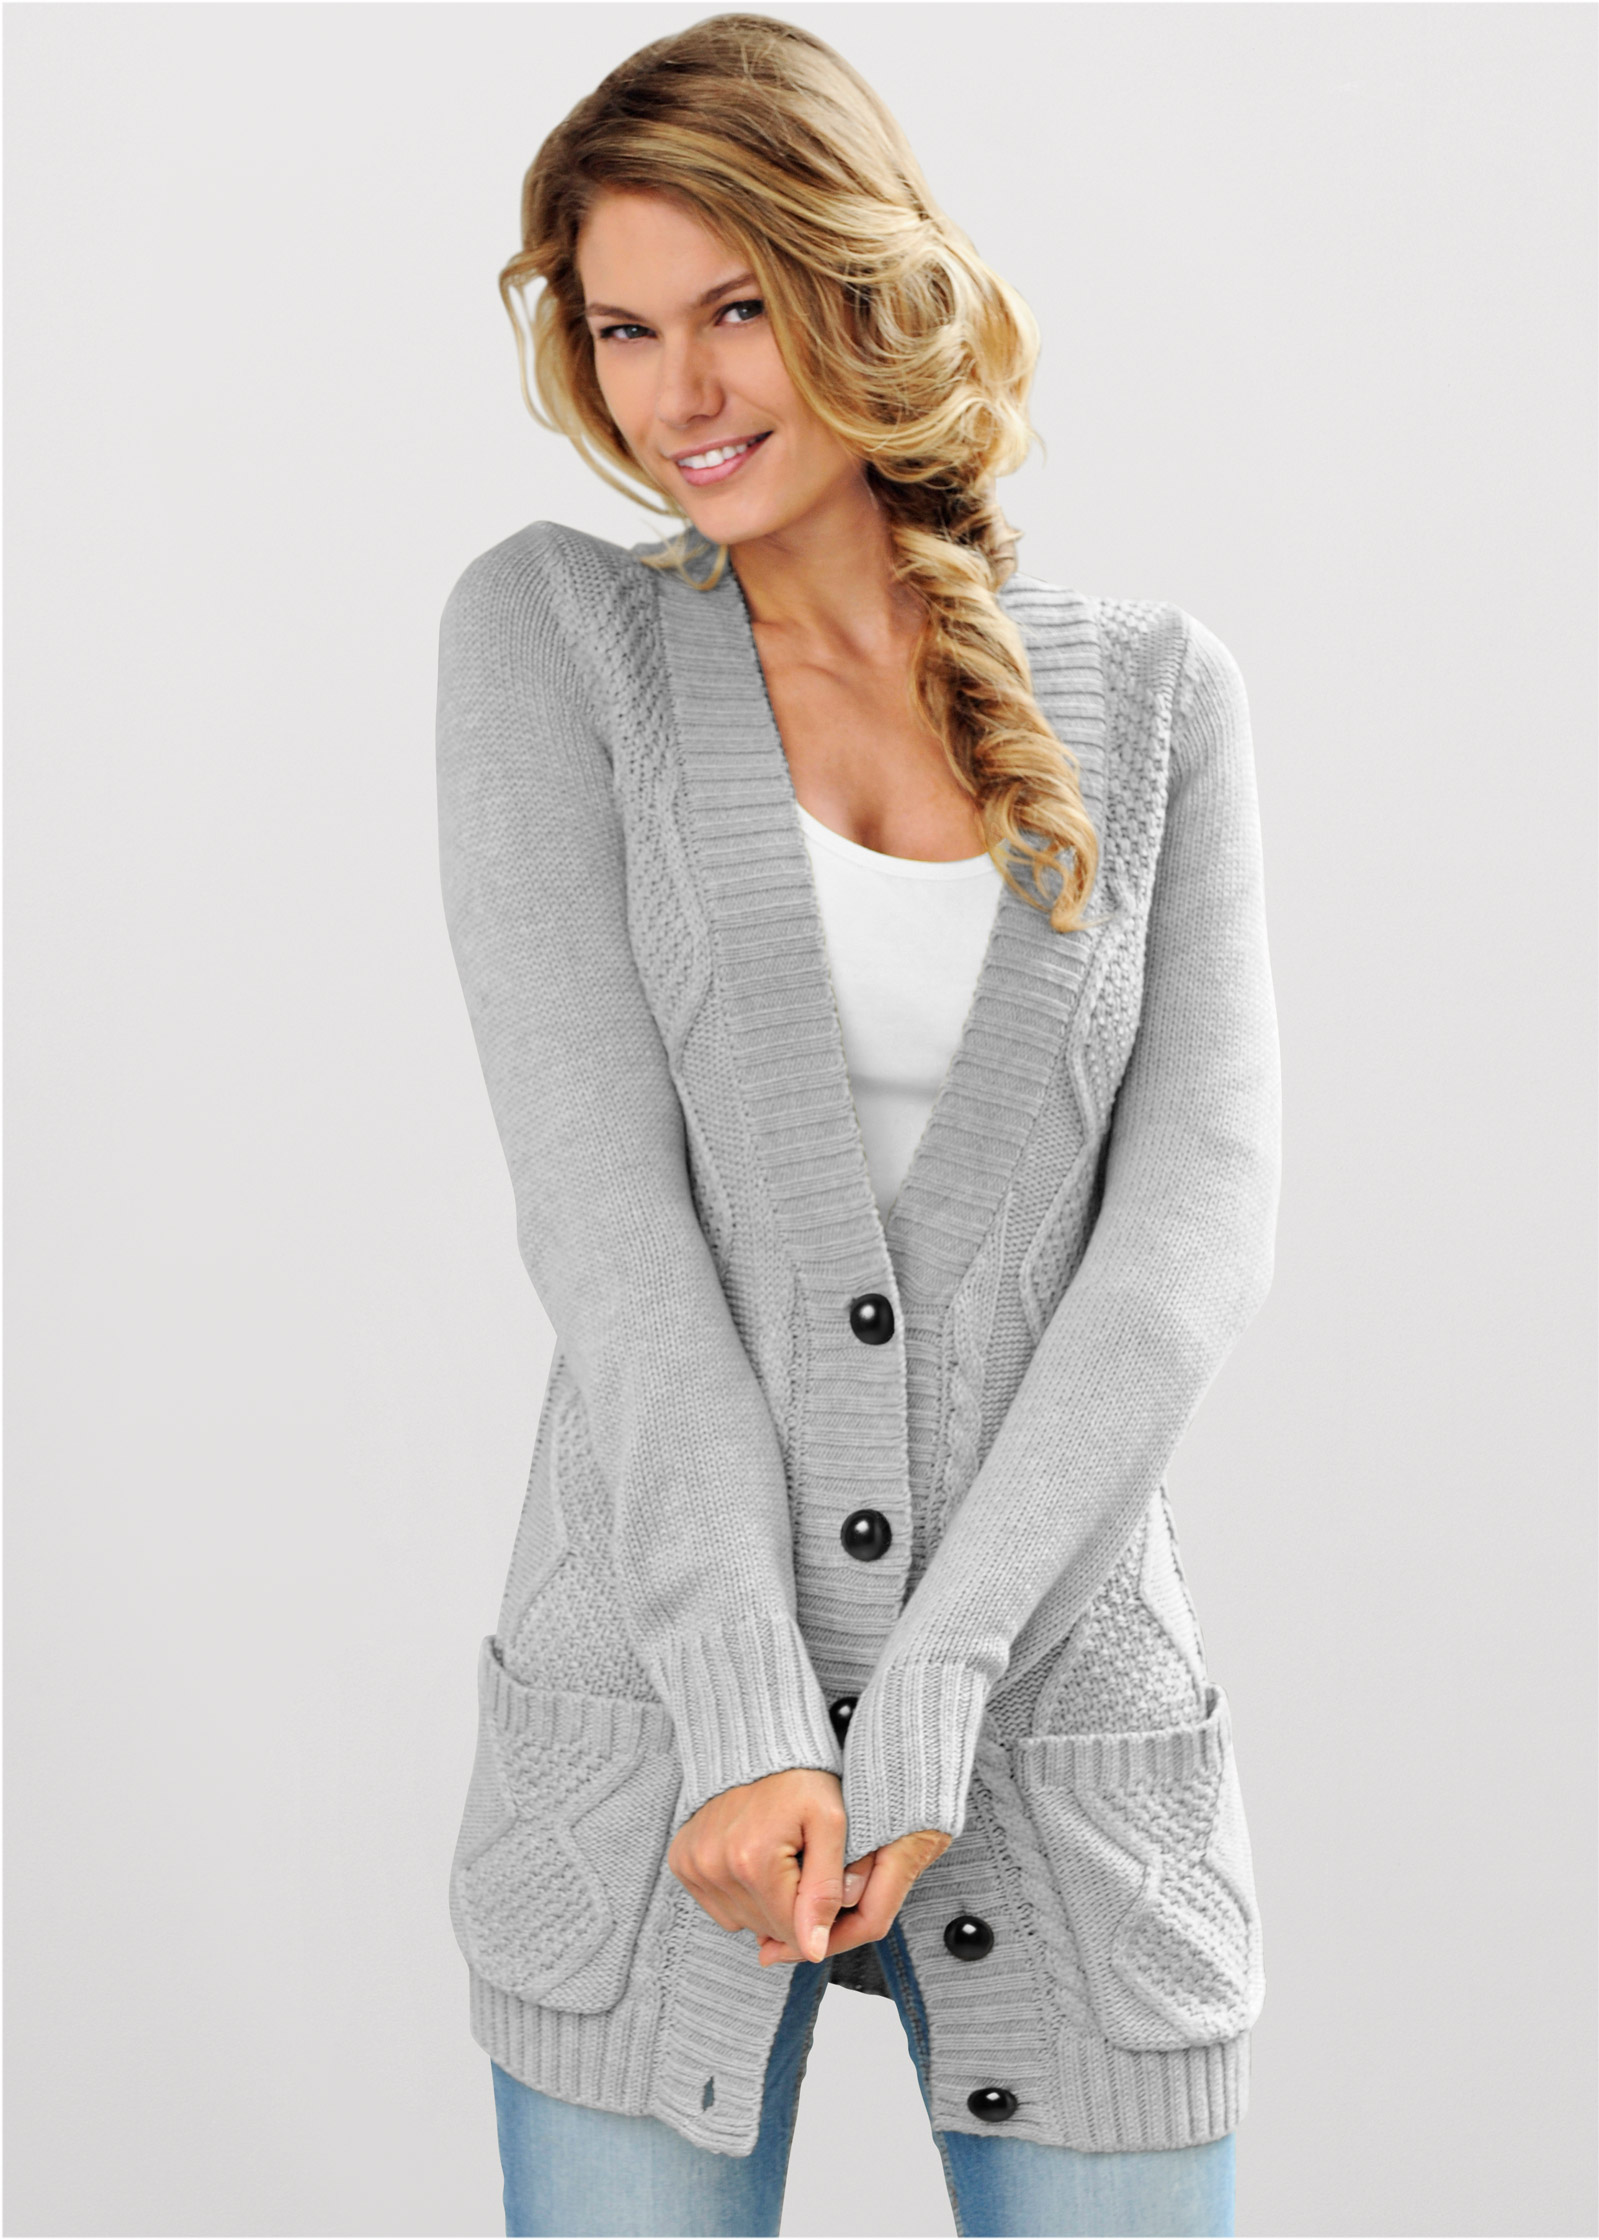 Jacket sweaters womens